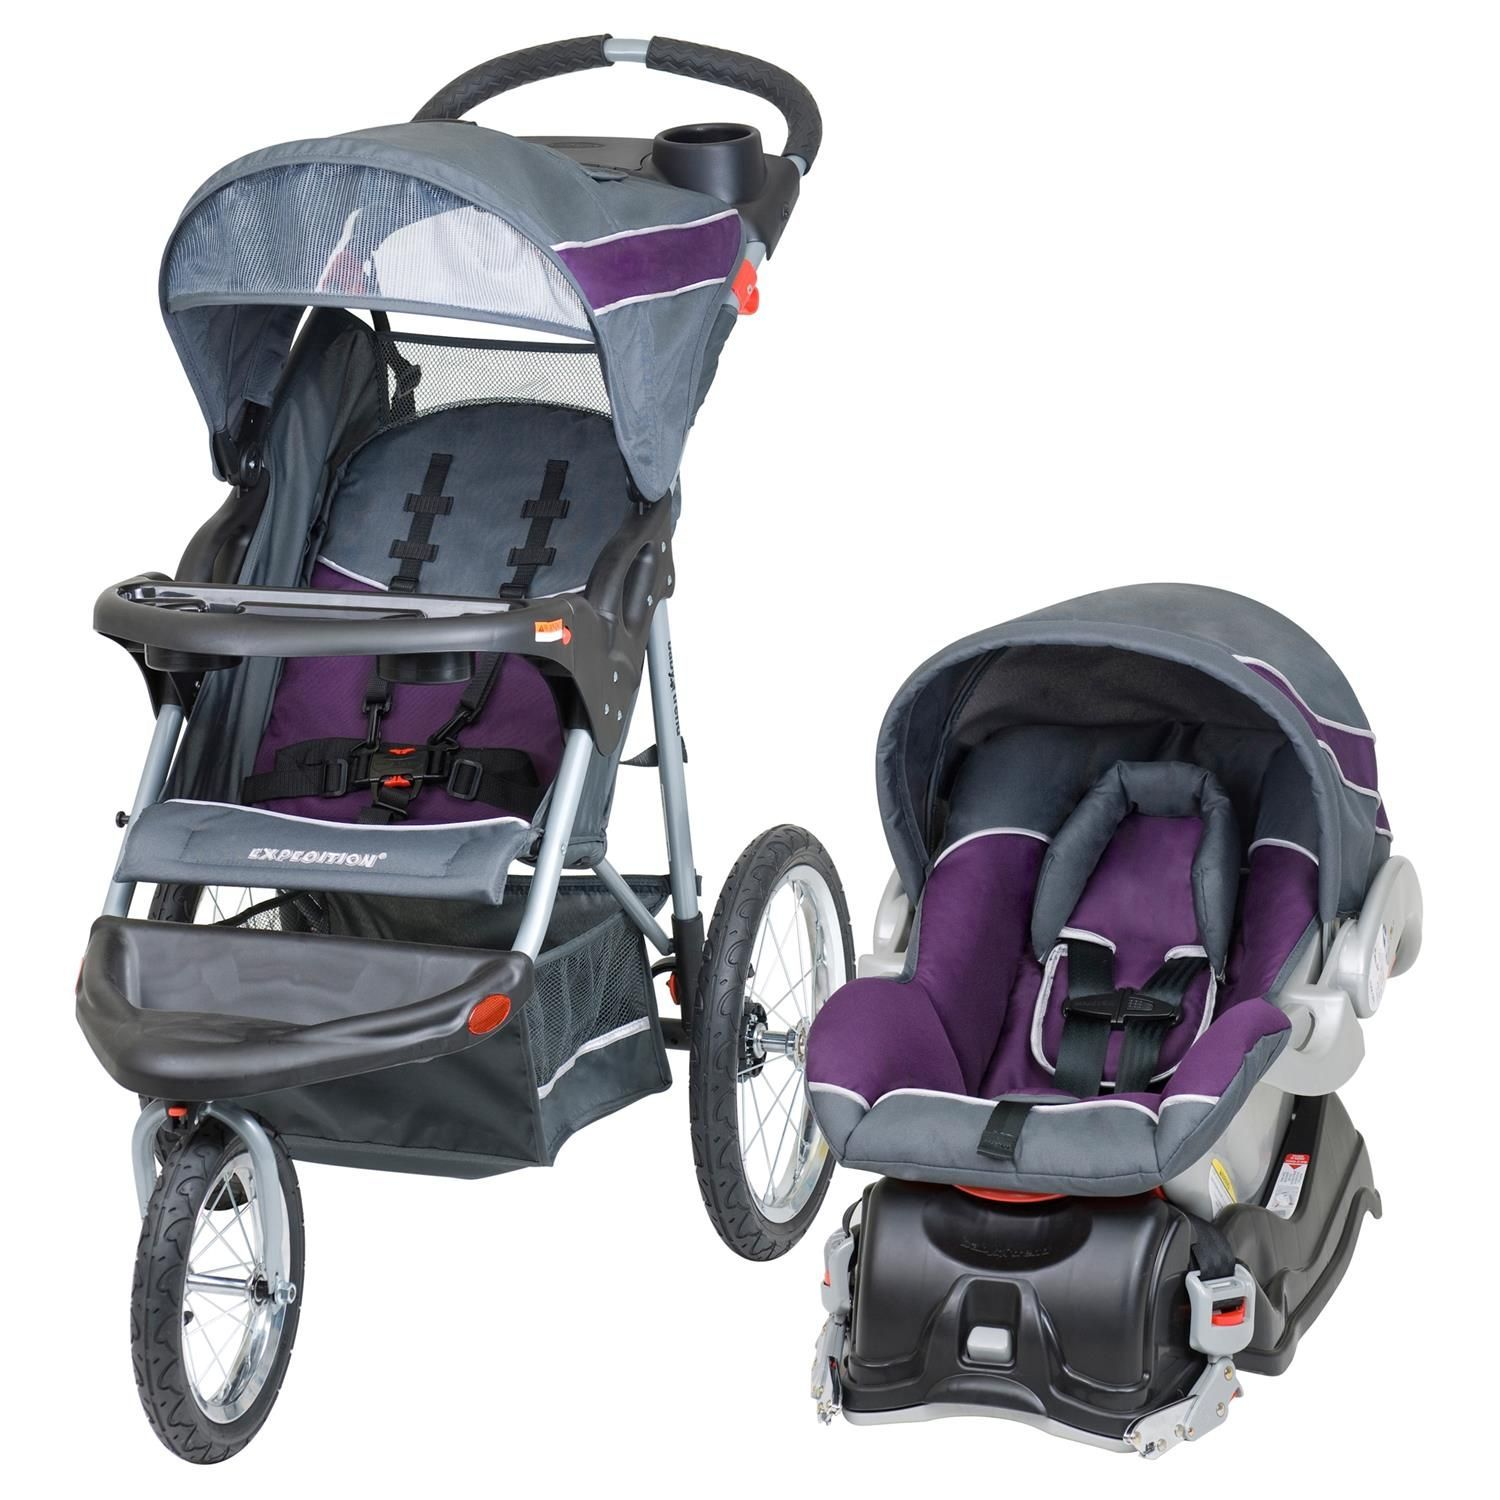 Expedition Travel System by Baby Trend at